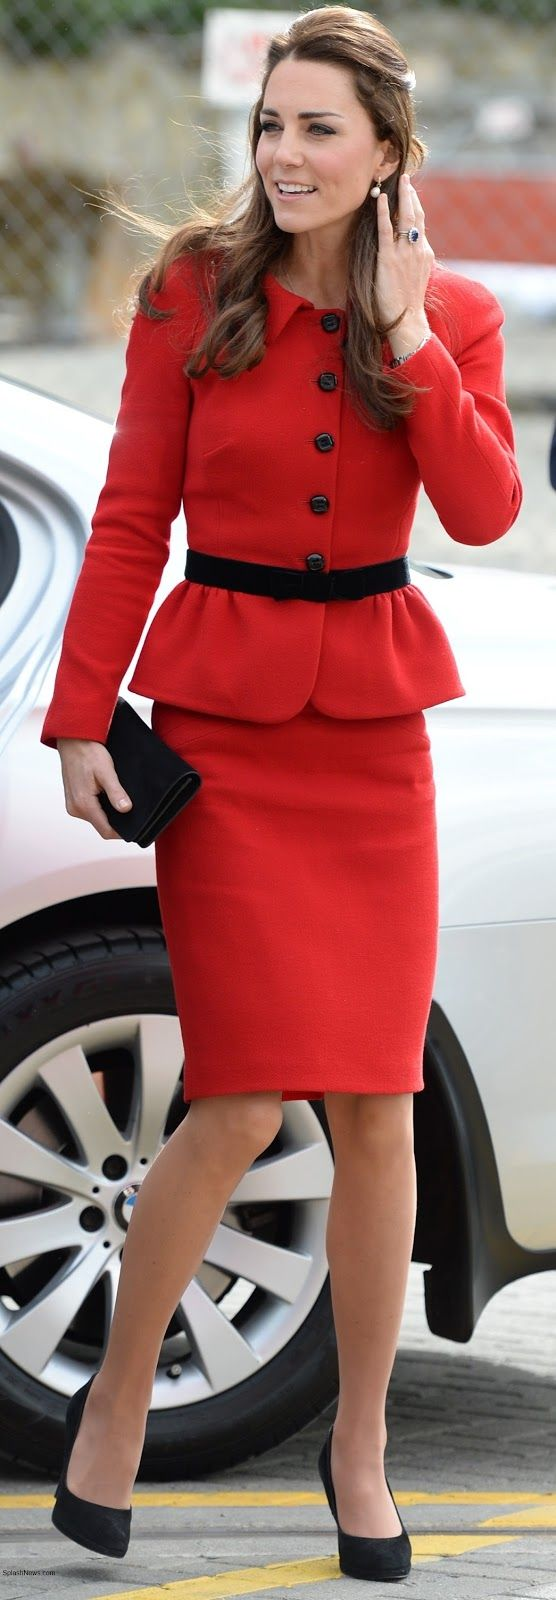 Christchurch, New Zealand, April 14, 2014-The Duchess of Cambridge repeated a Luisa Spangoli red skirt suit she first wore on a visit to St. Andrews University, teamed with black accessories to honor the colors of Christchurch